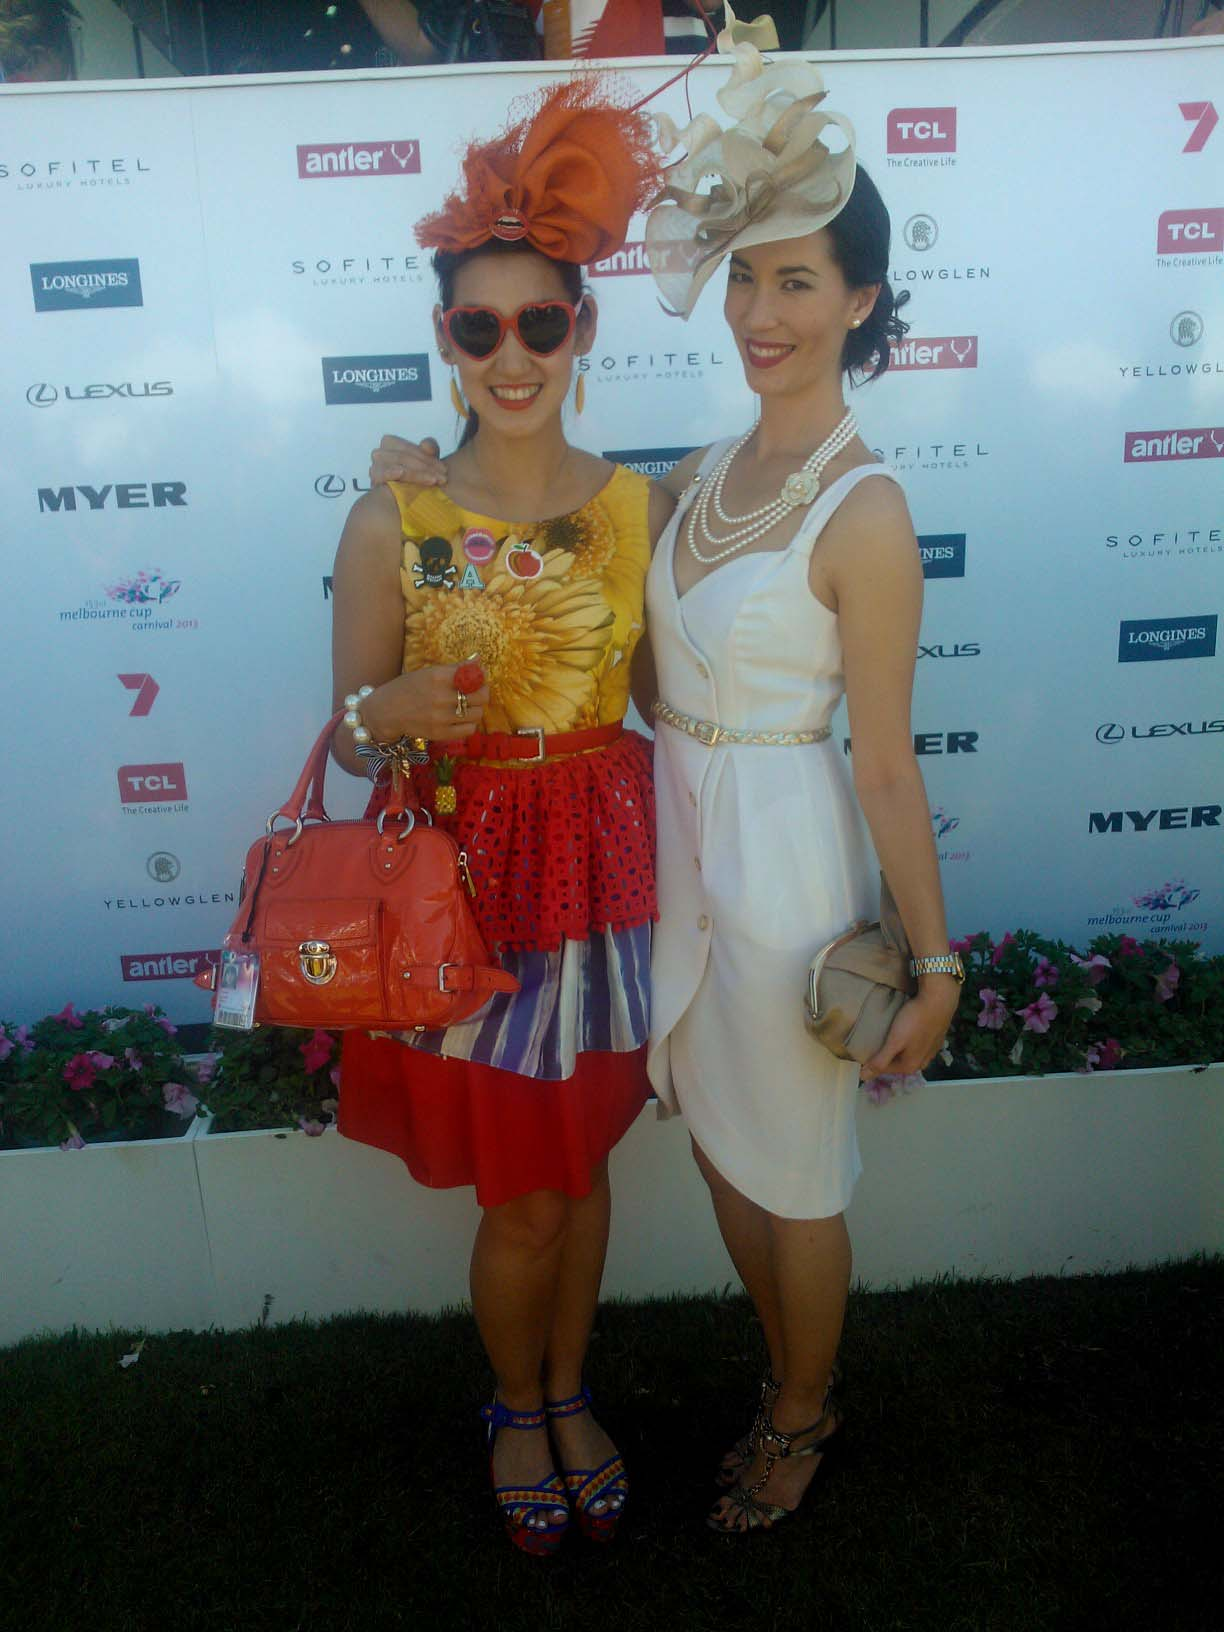 Angela and Lisa arrive at Flemington for Melbourne Cup Day.